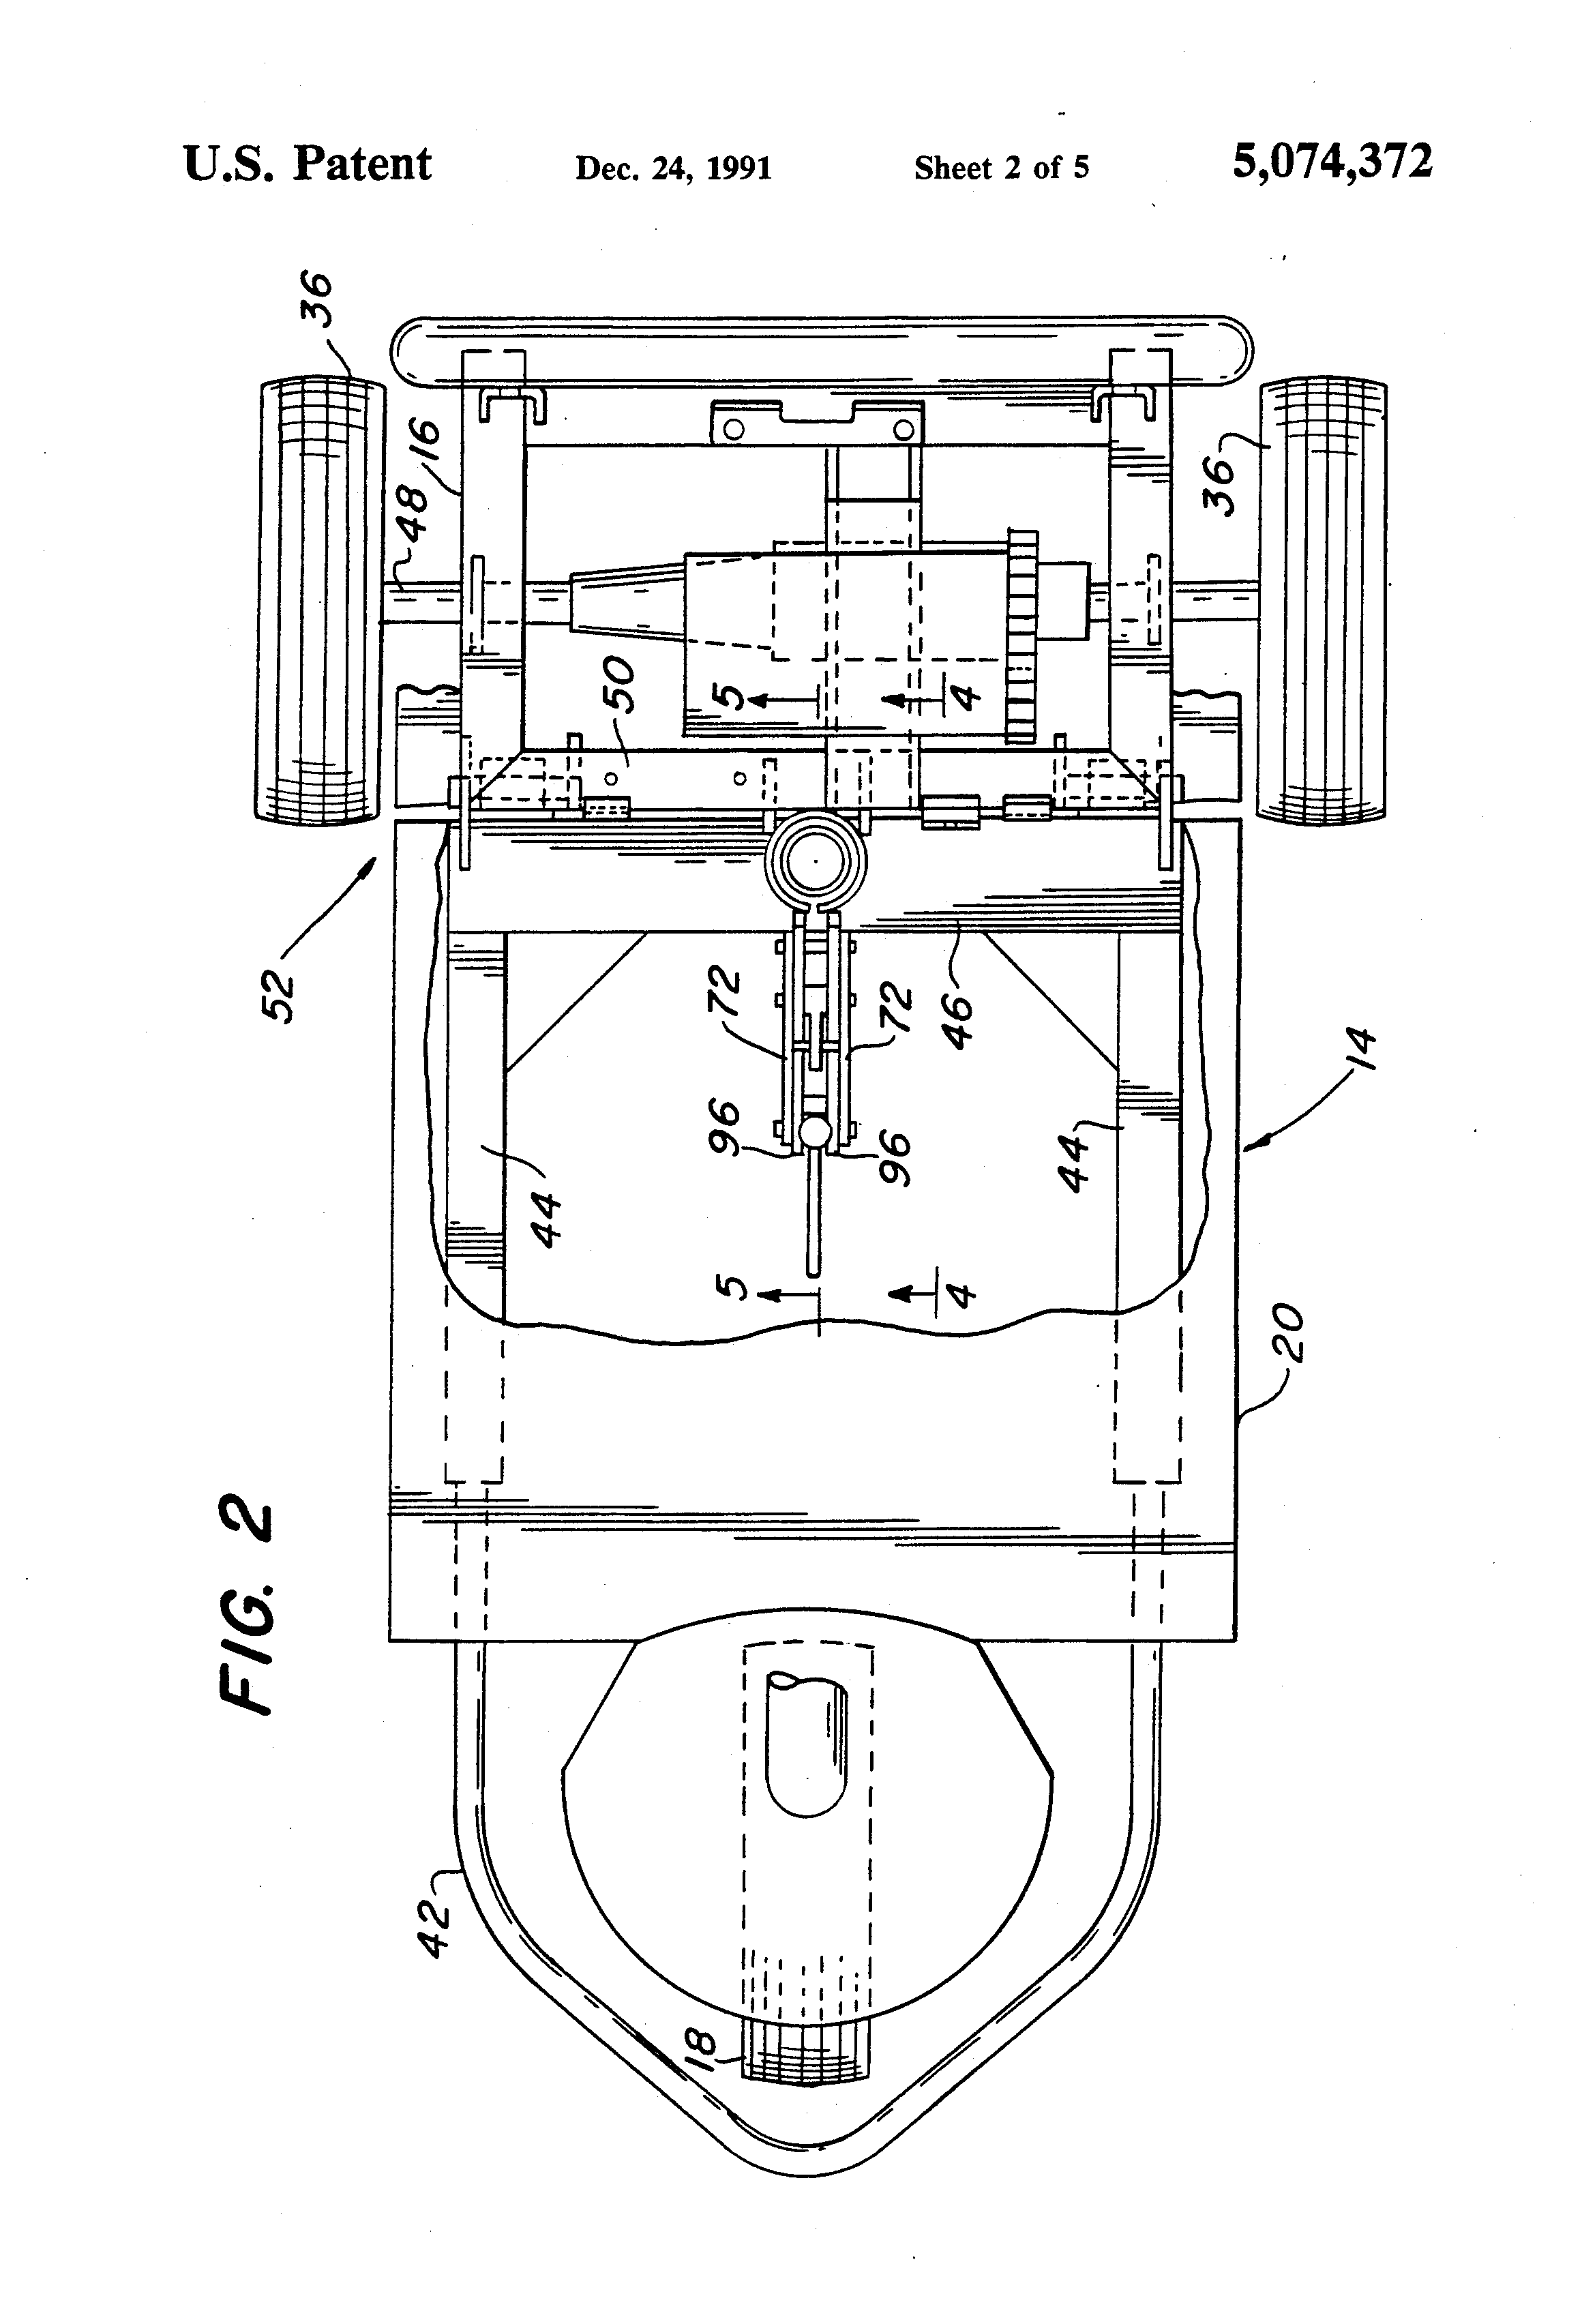 patent us5074372 - knock down motorized three-wheeled vehicle